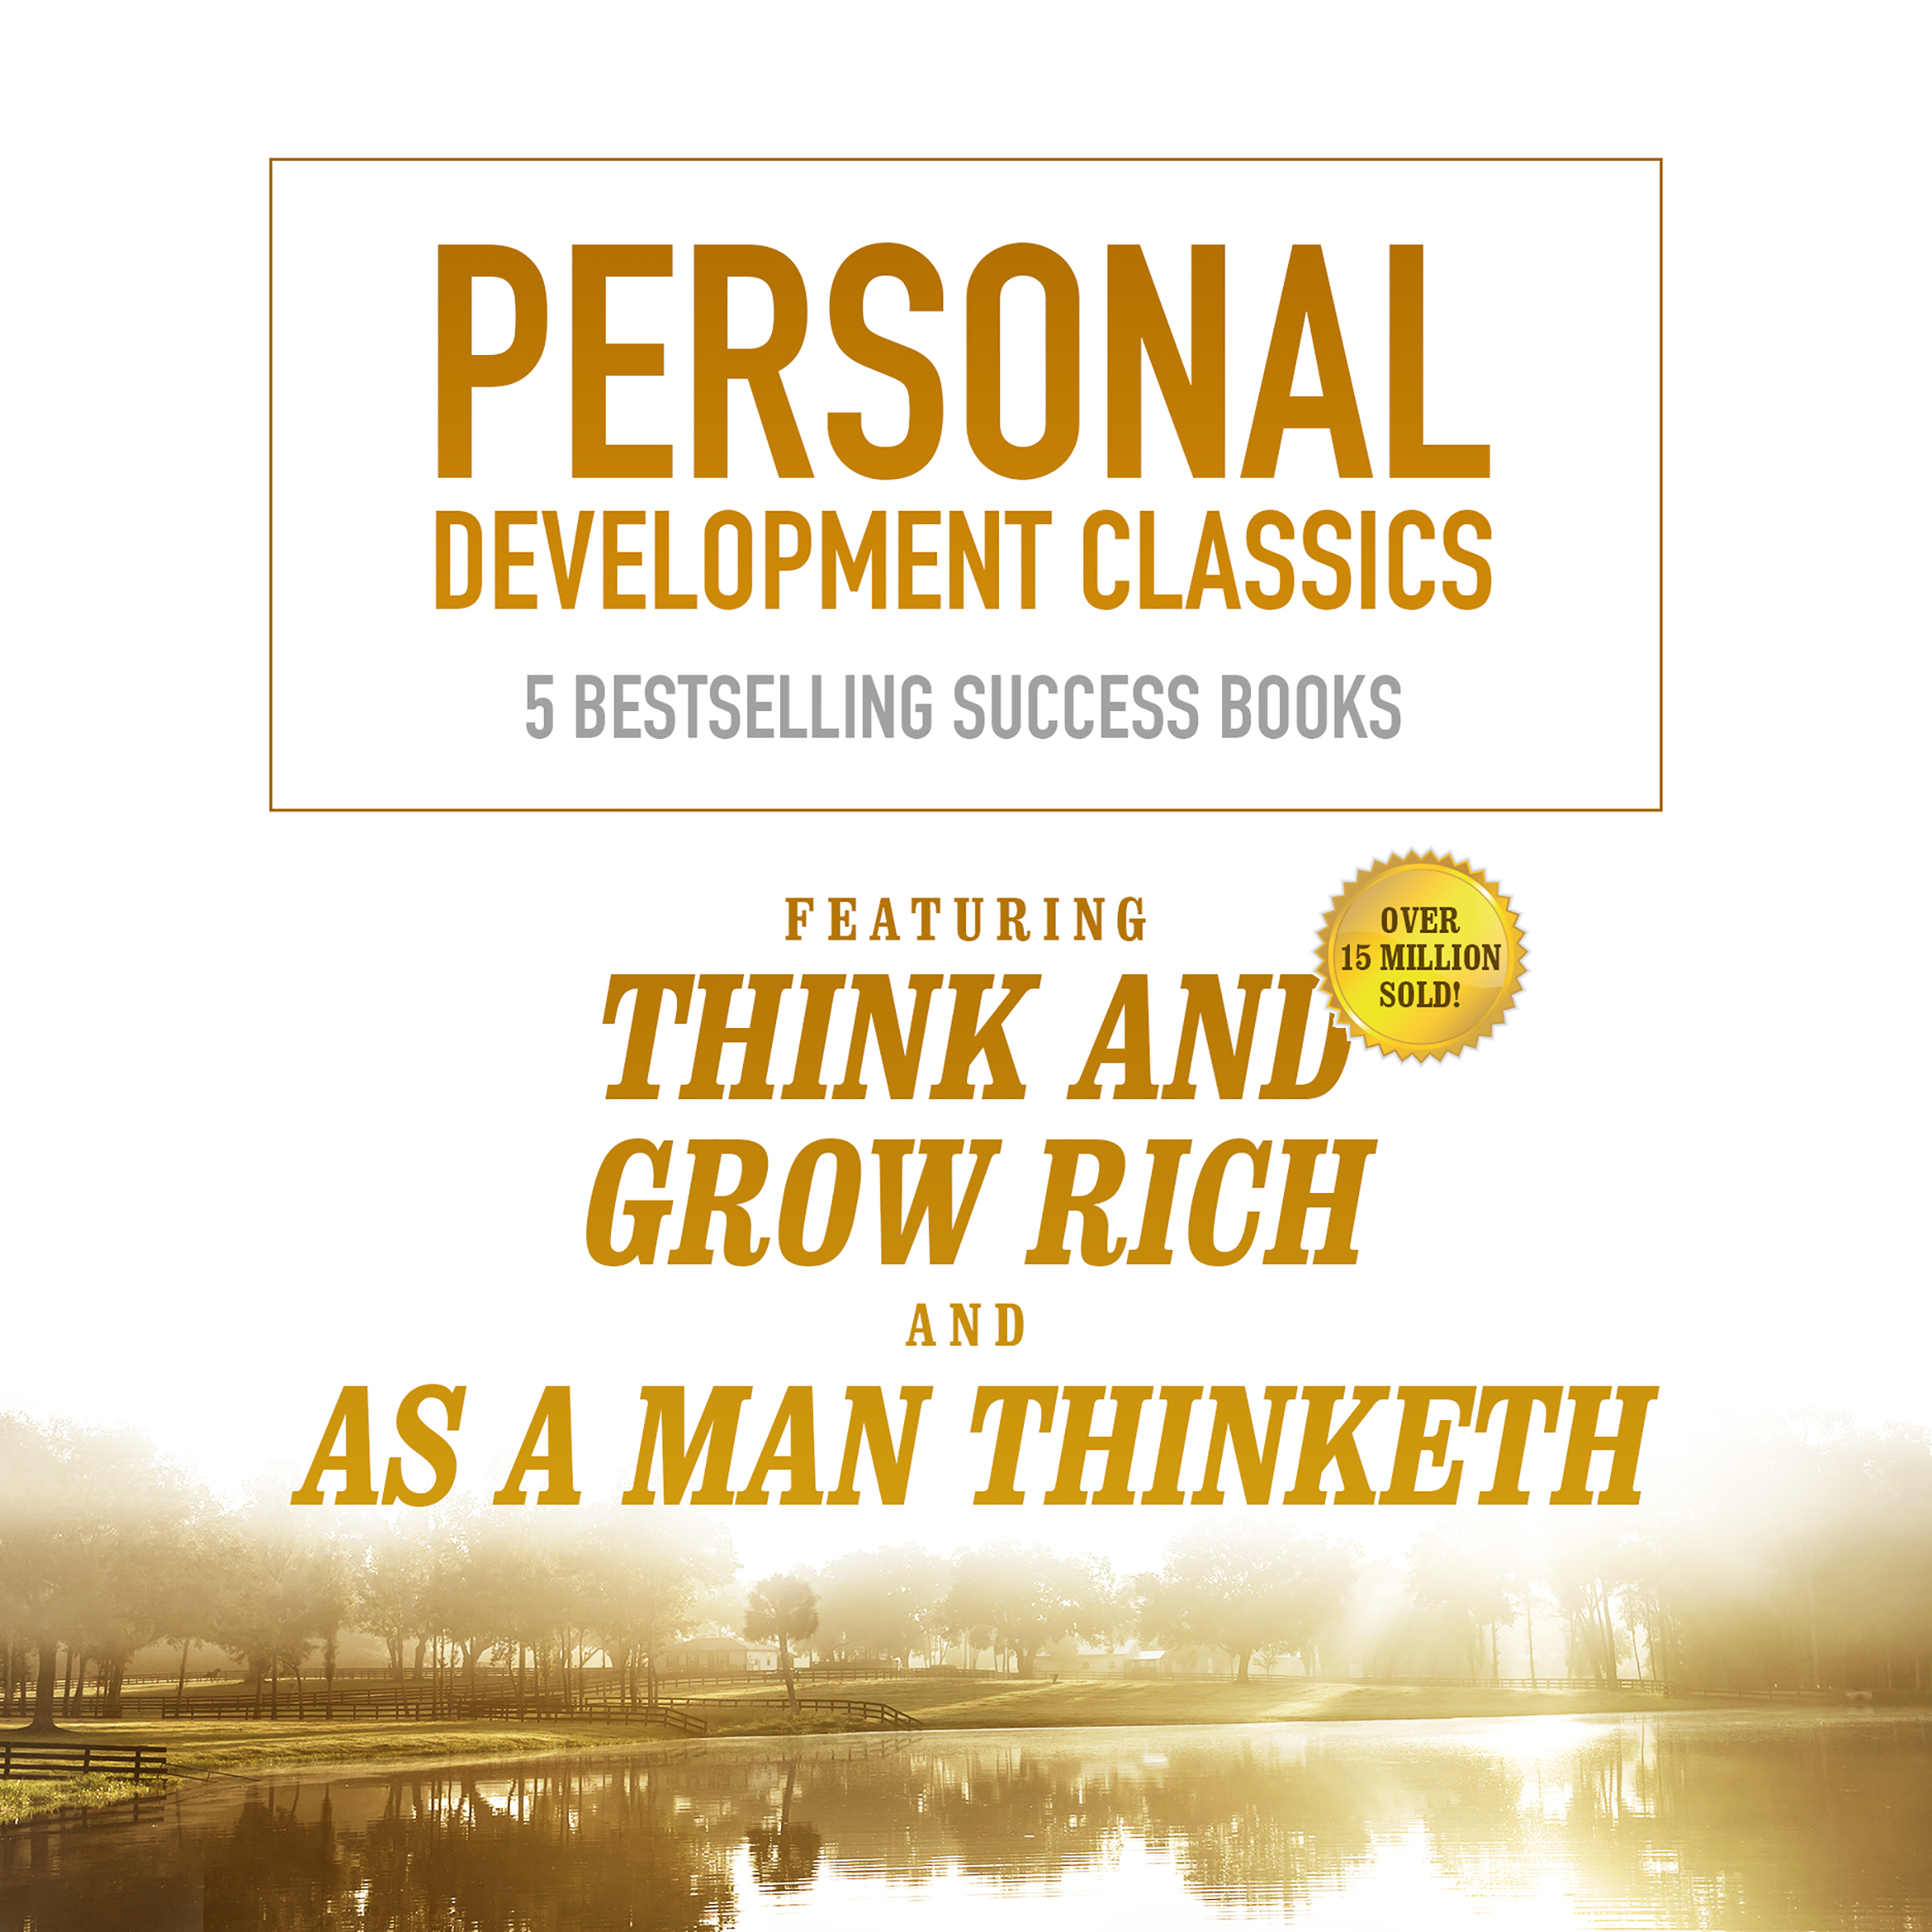 Printable Personal Development Classics: 5 Bestselling Success Books Audiobook Cover Art